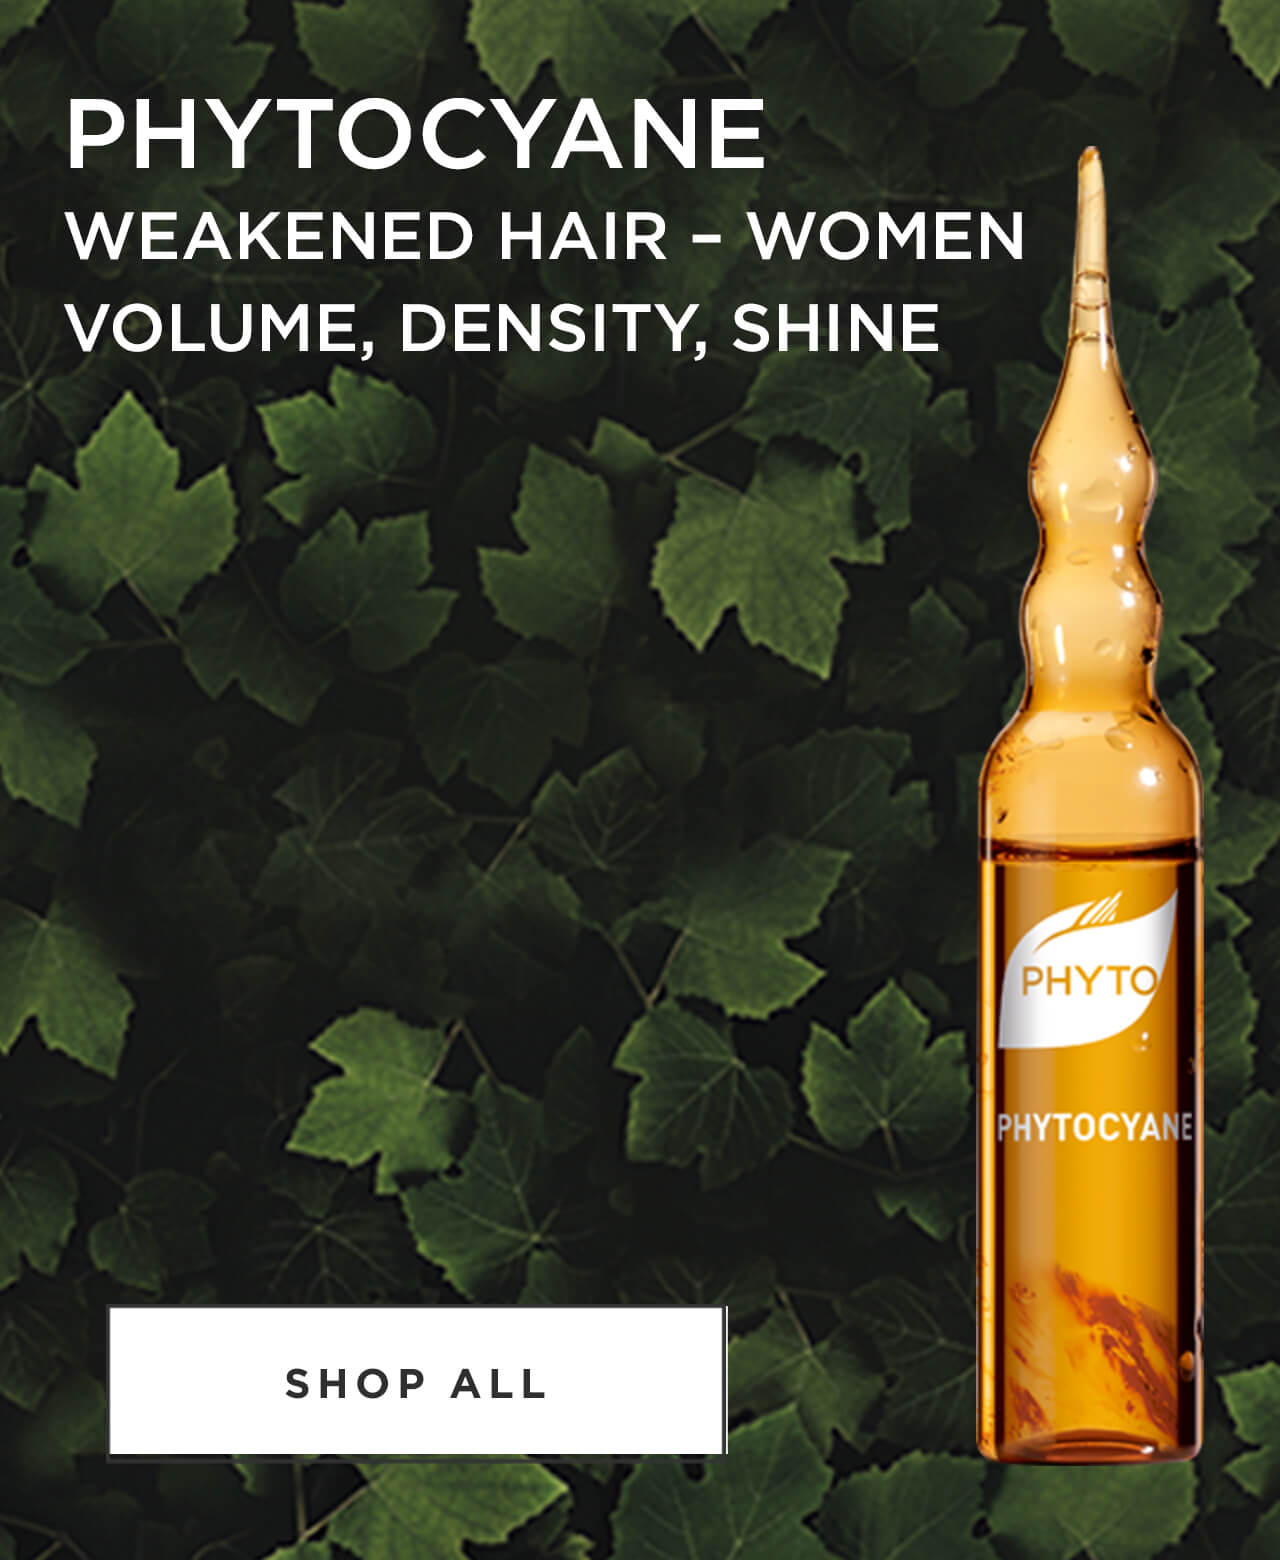 Phytocane weakened hair - Women Volume, Density, Shine